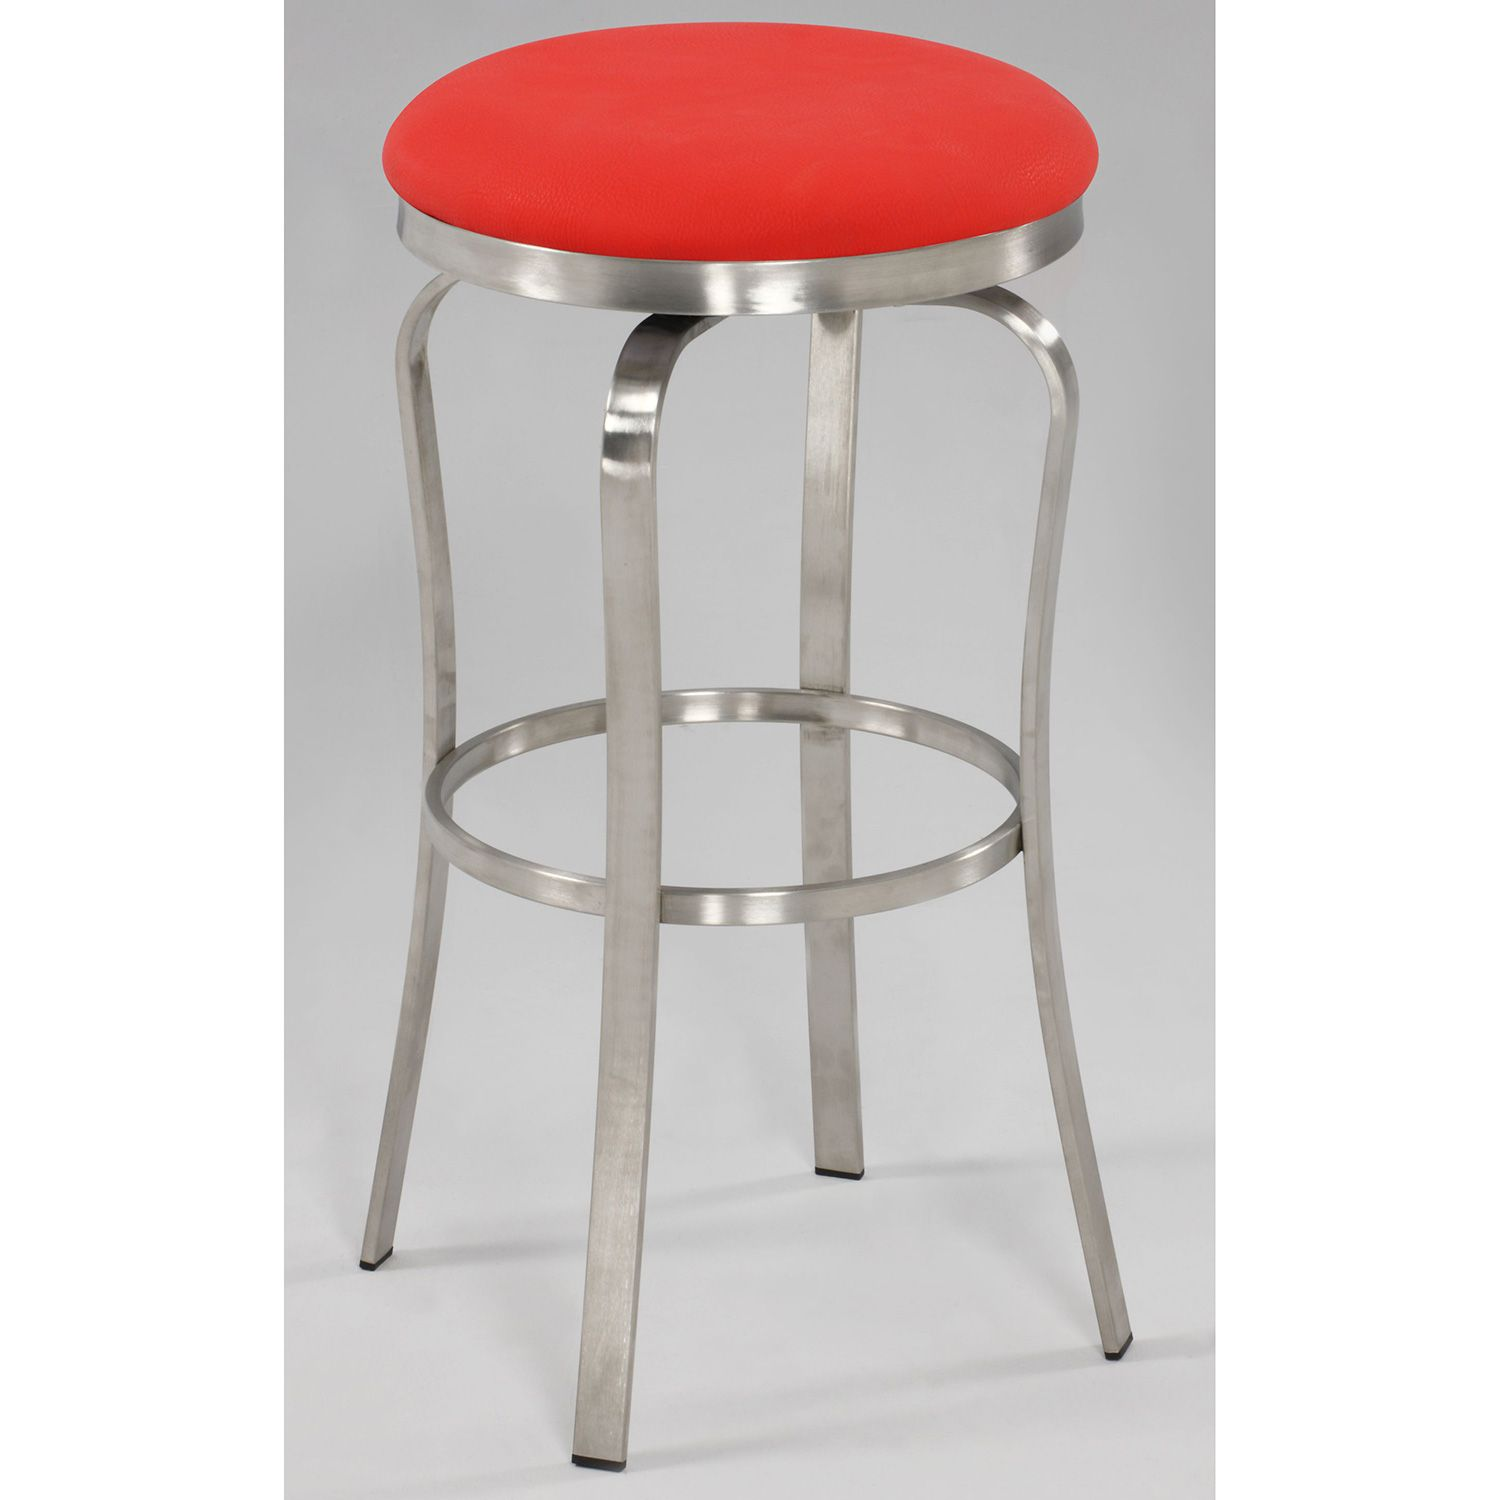 Miraculous Chintaly Modern Backless Bar Stool Red Leatherette Brushed Machost Co Dining Chair Design Ideas Machostcouk